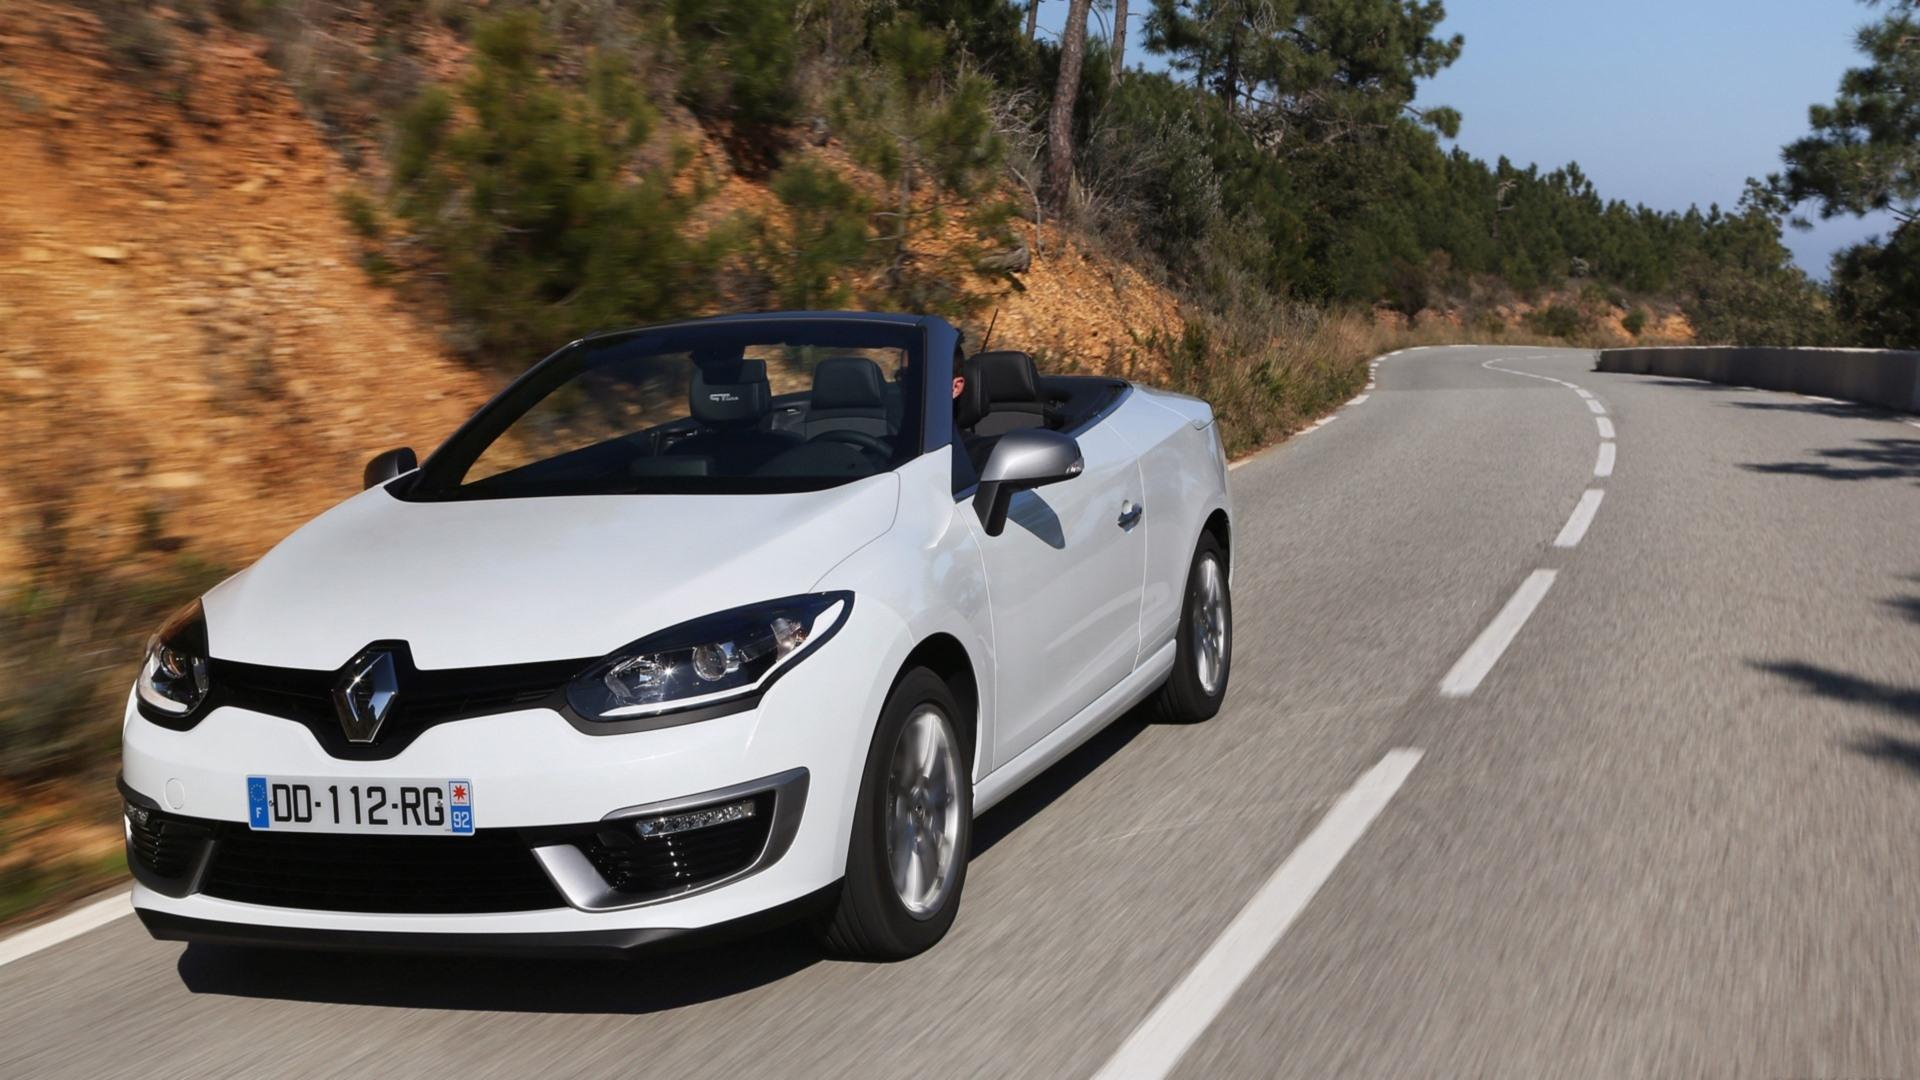 2015 renault megane coupe cabriolet wallpaper hd download. Black Bedroom Furniture Sets. Home Design Ideas